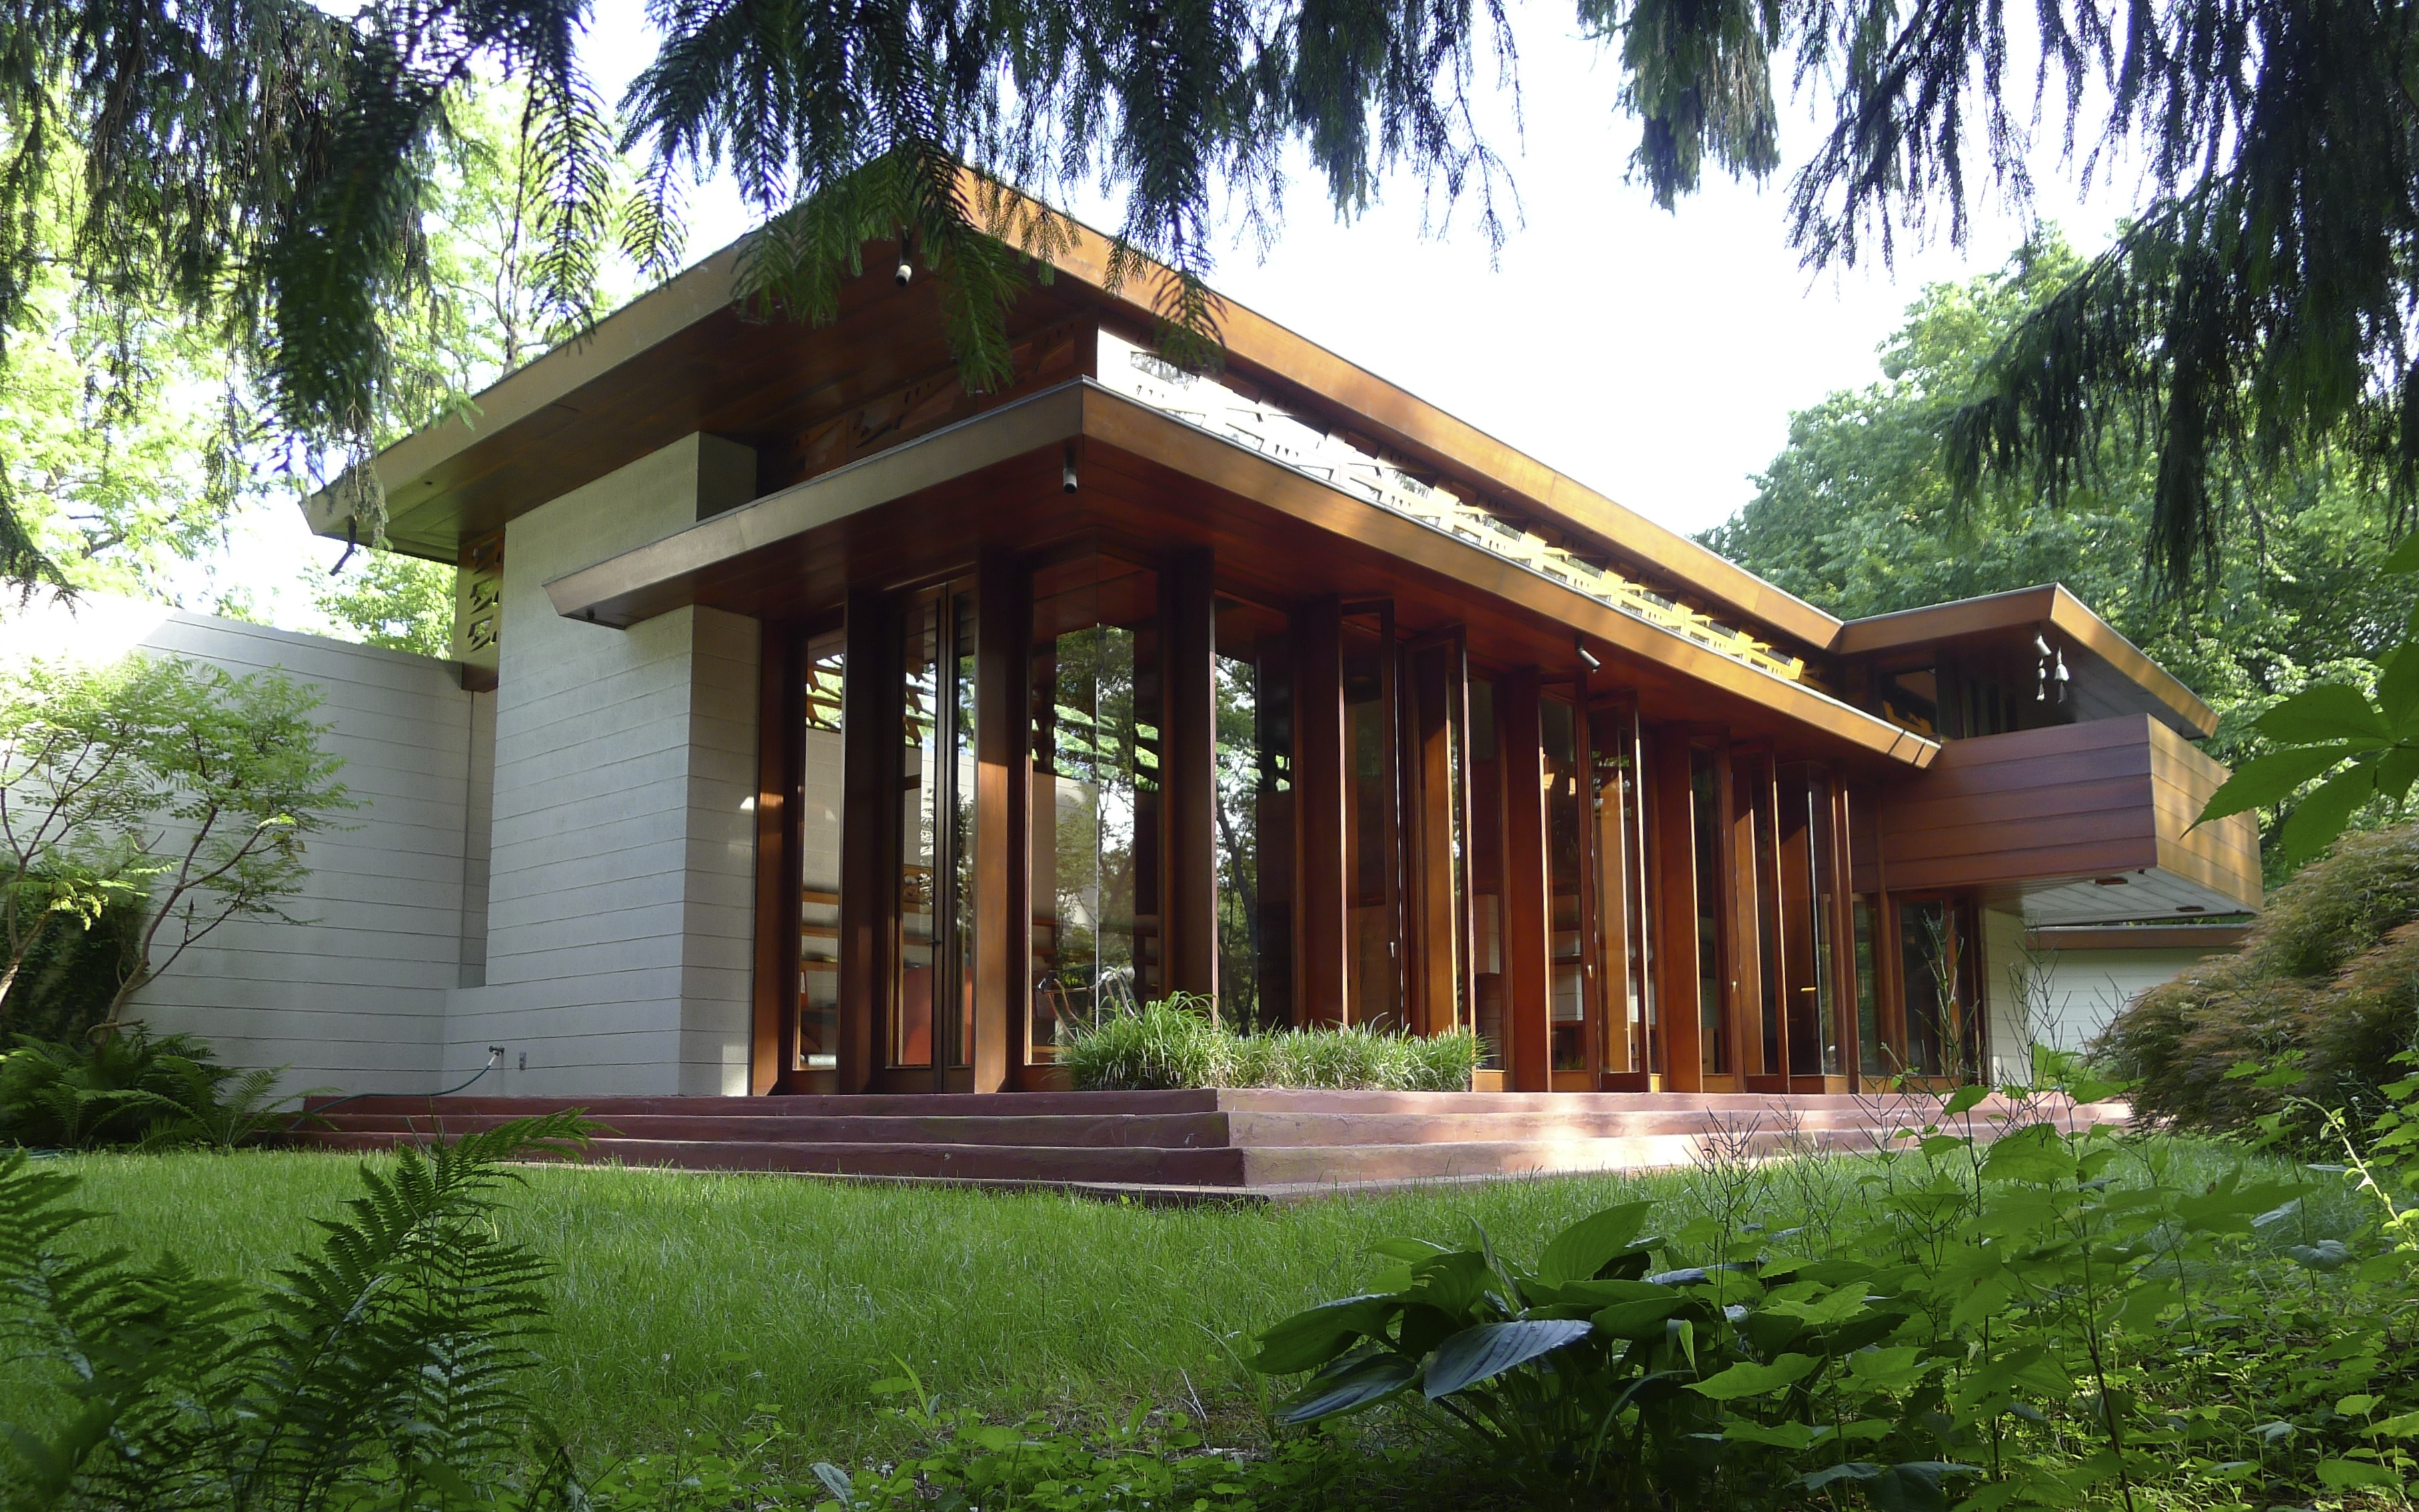 Crystal bridges buys frank lloyd wright house will move it from n j